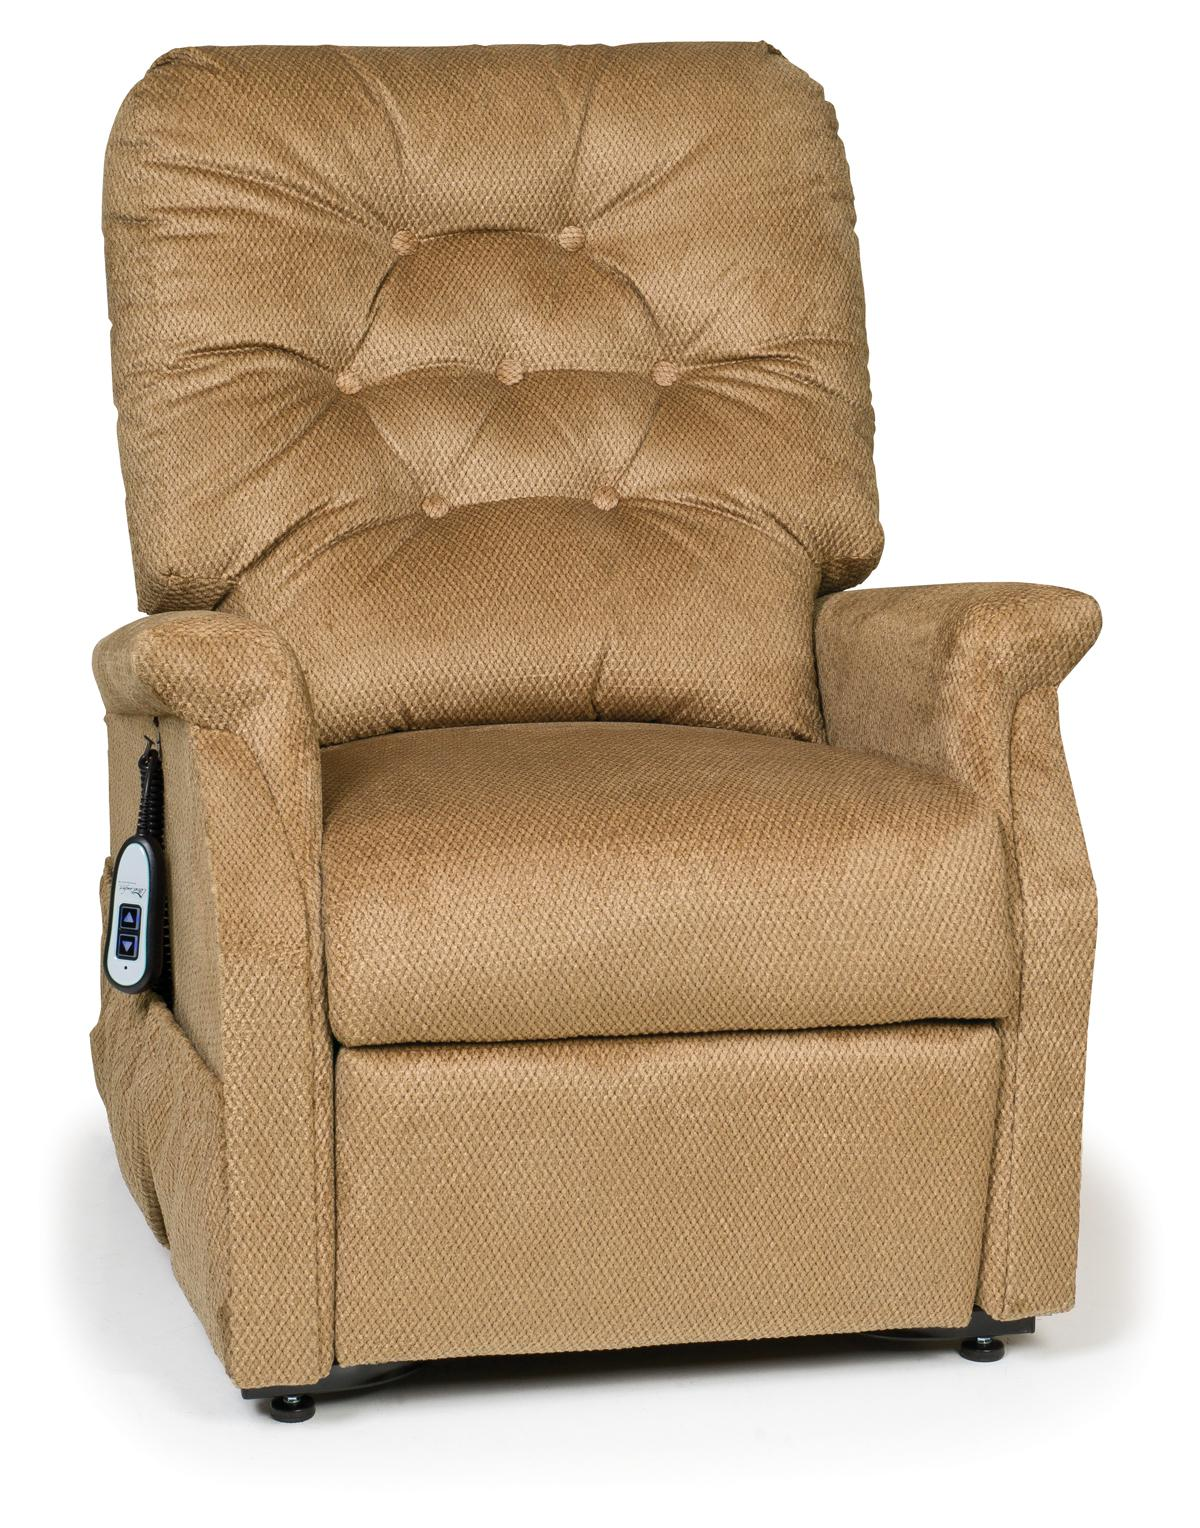 Leisure Lift Non-Chaise Recliner by UltraComfort at Suburban Furniture